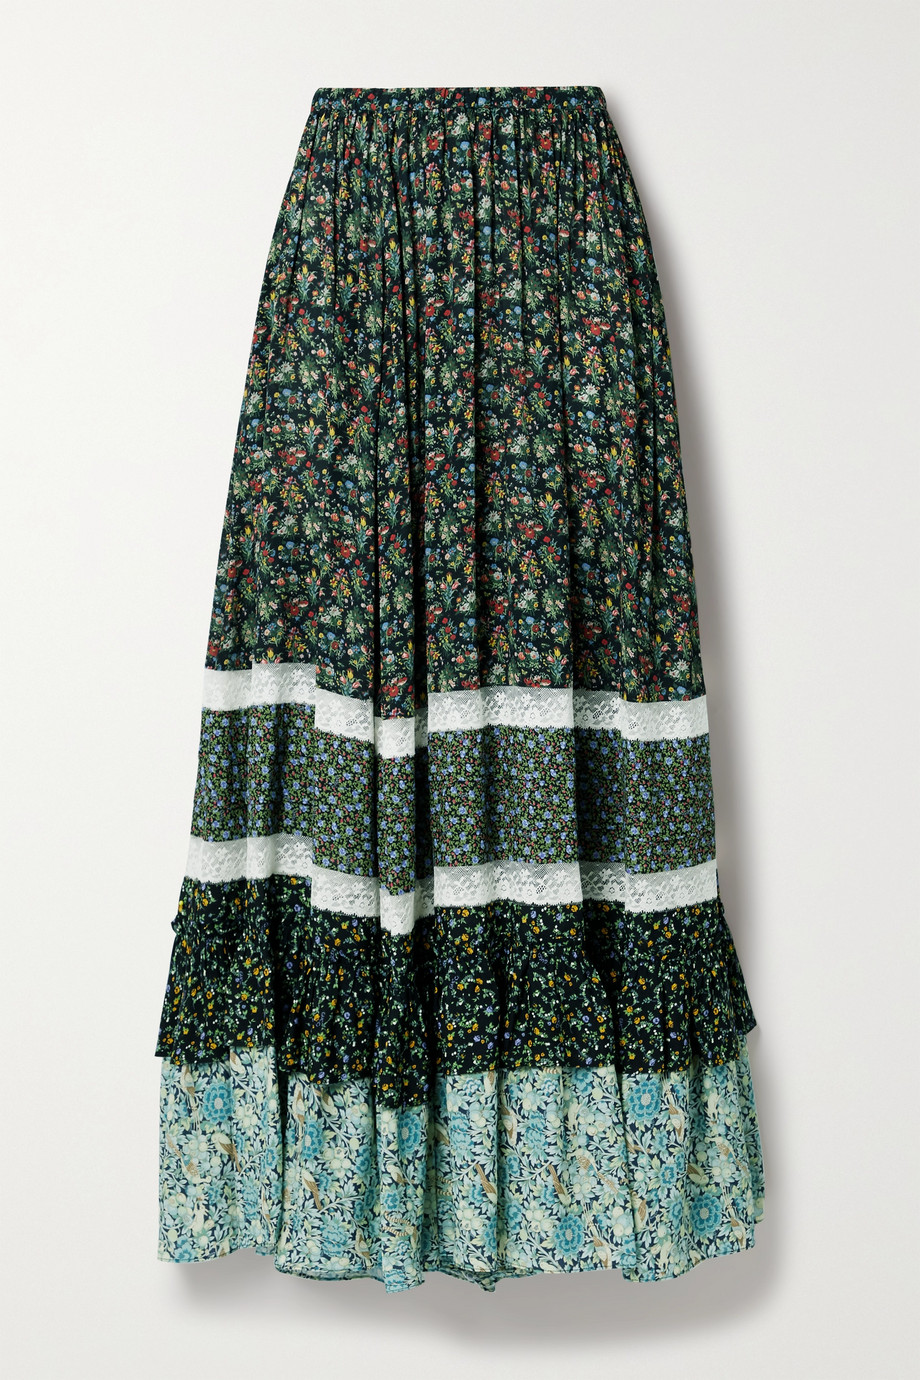 Gucci Lace-trimmed patchwork floral-print crepe maxi skirt